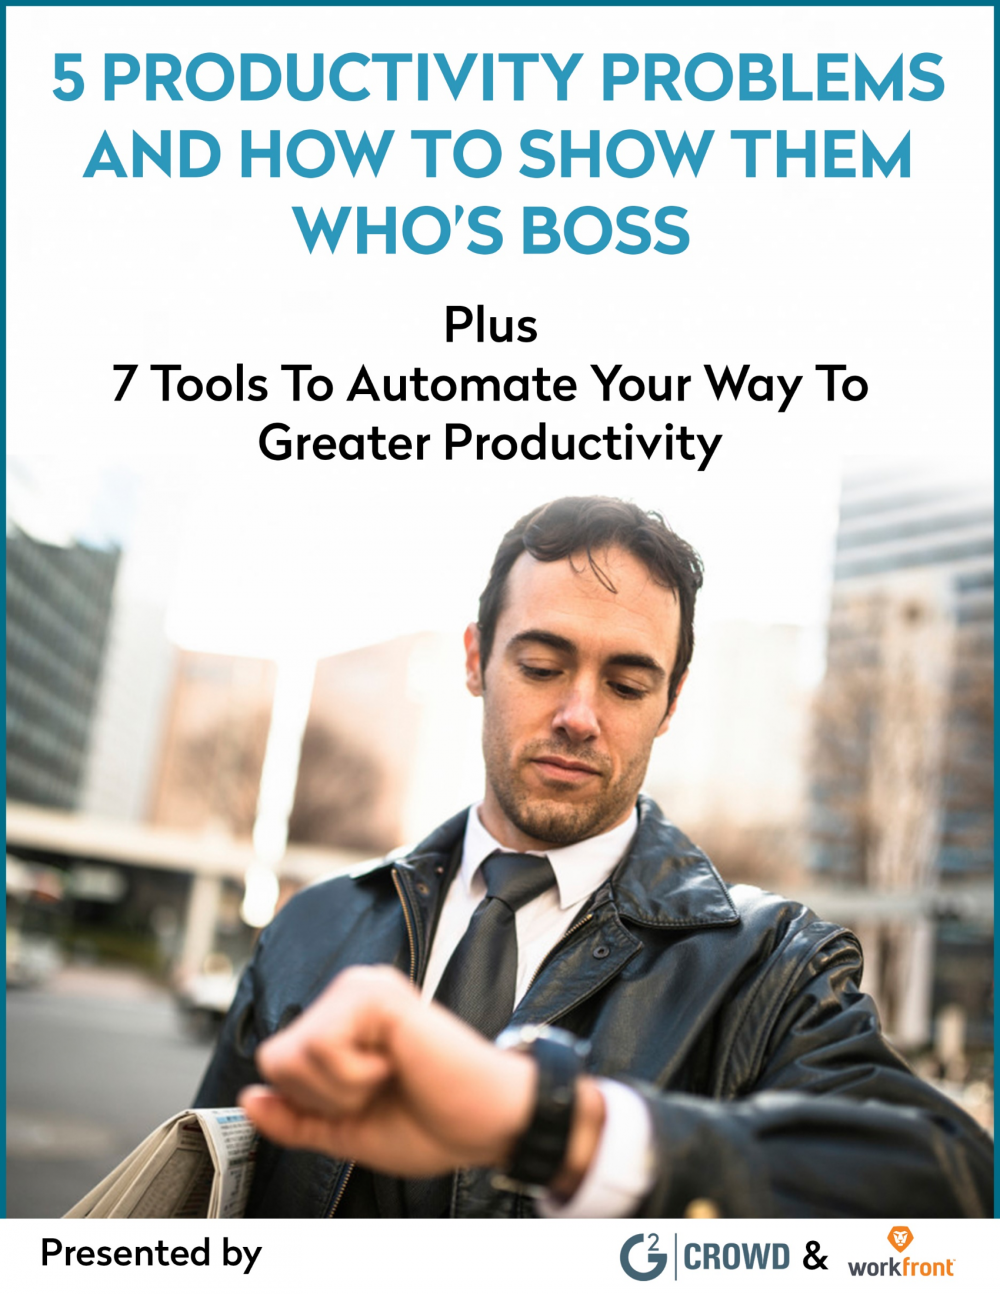 5 Productivity Problems and How to Show Them Who's Boss